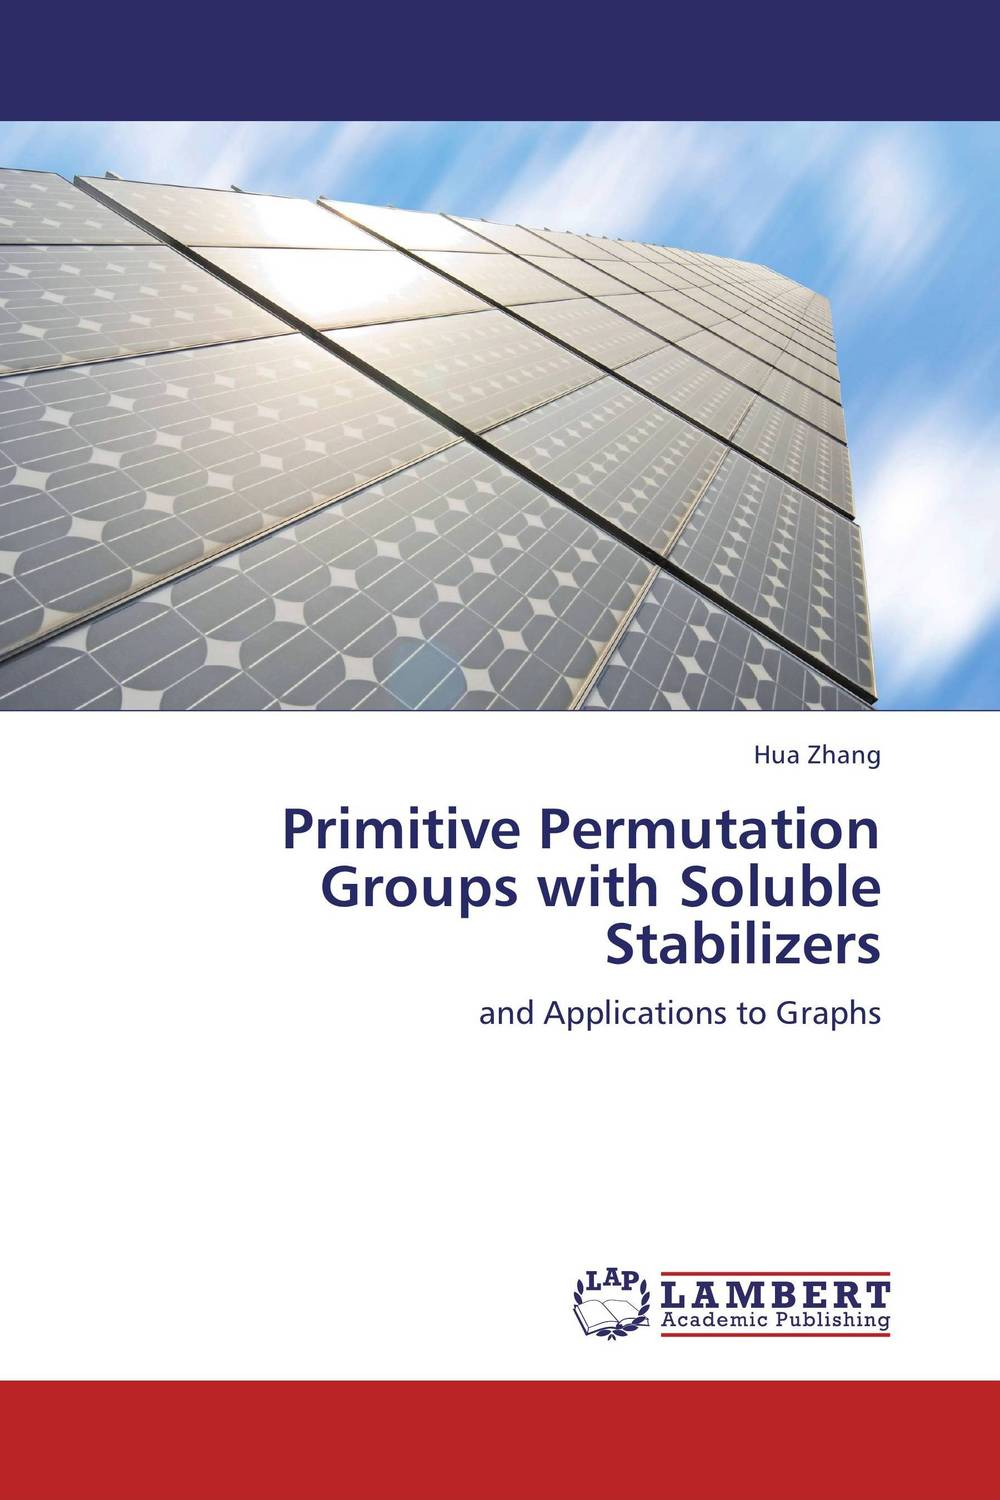 Primitive Permutation Groups with Soluble Stabilizers permutation orbifolds in conformal field theories and string theory